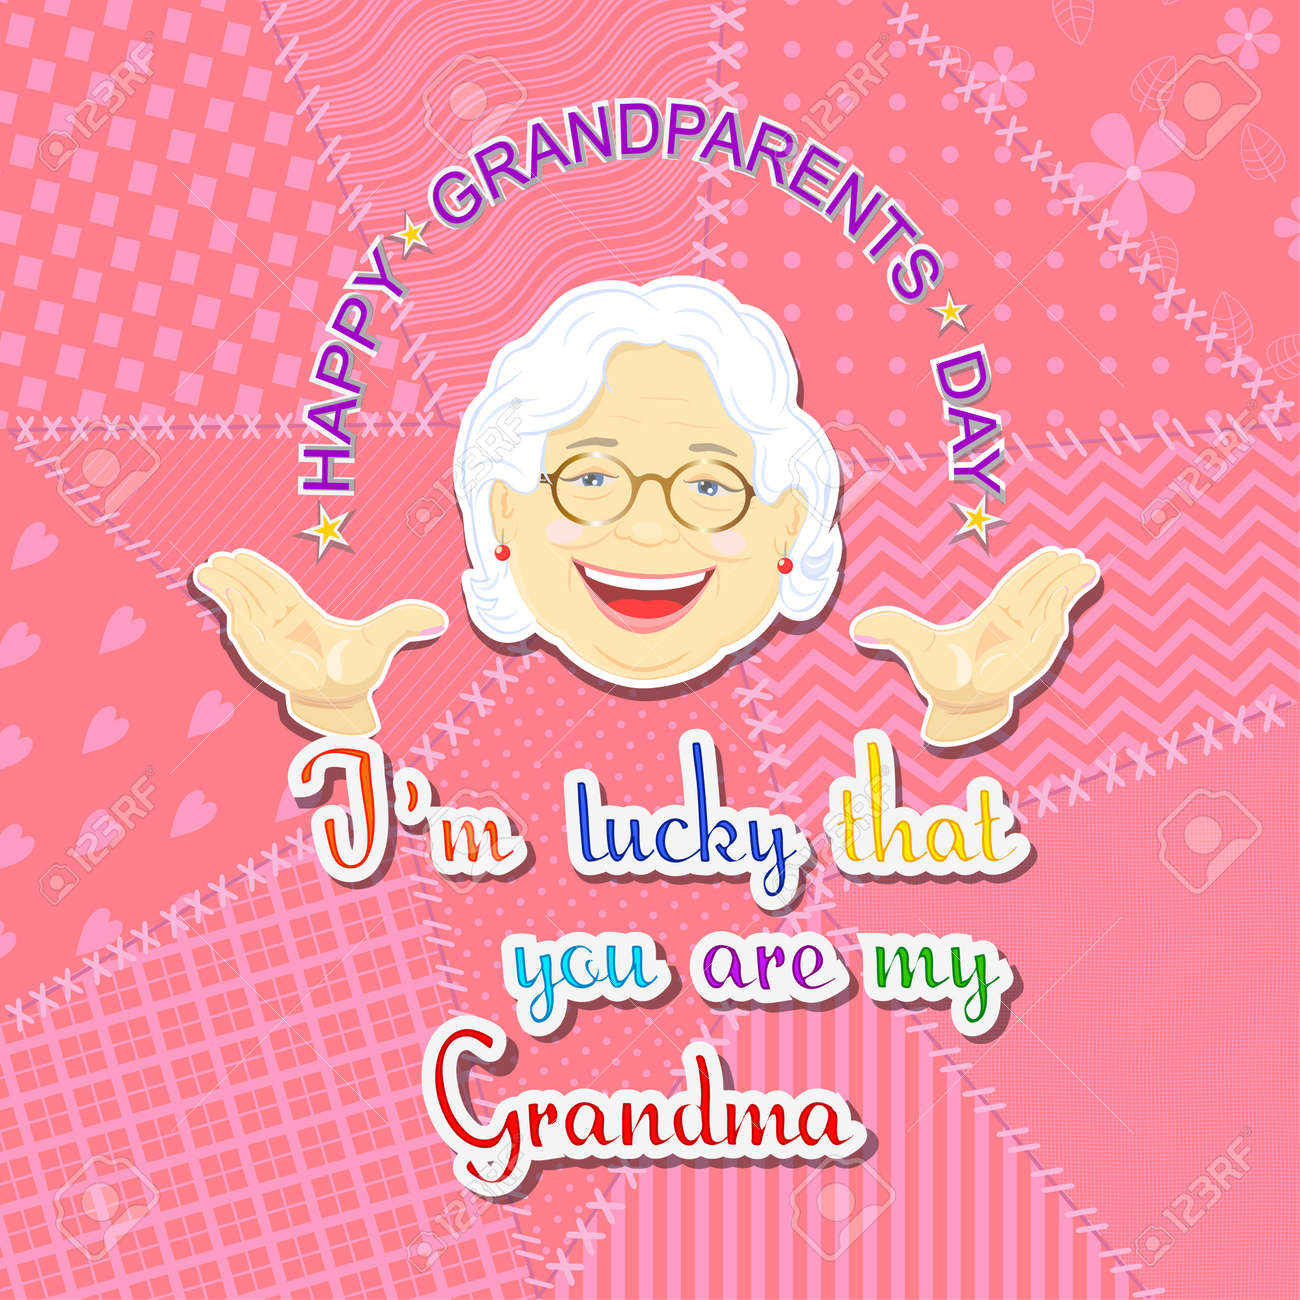 Greetings on grandparents day with the phrase and grandmother greetings on grandparents day with the phrase and grandmother face on a pink background in patchwork kristyandbryce Gallery